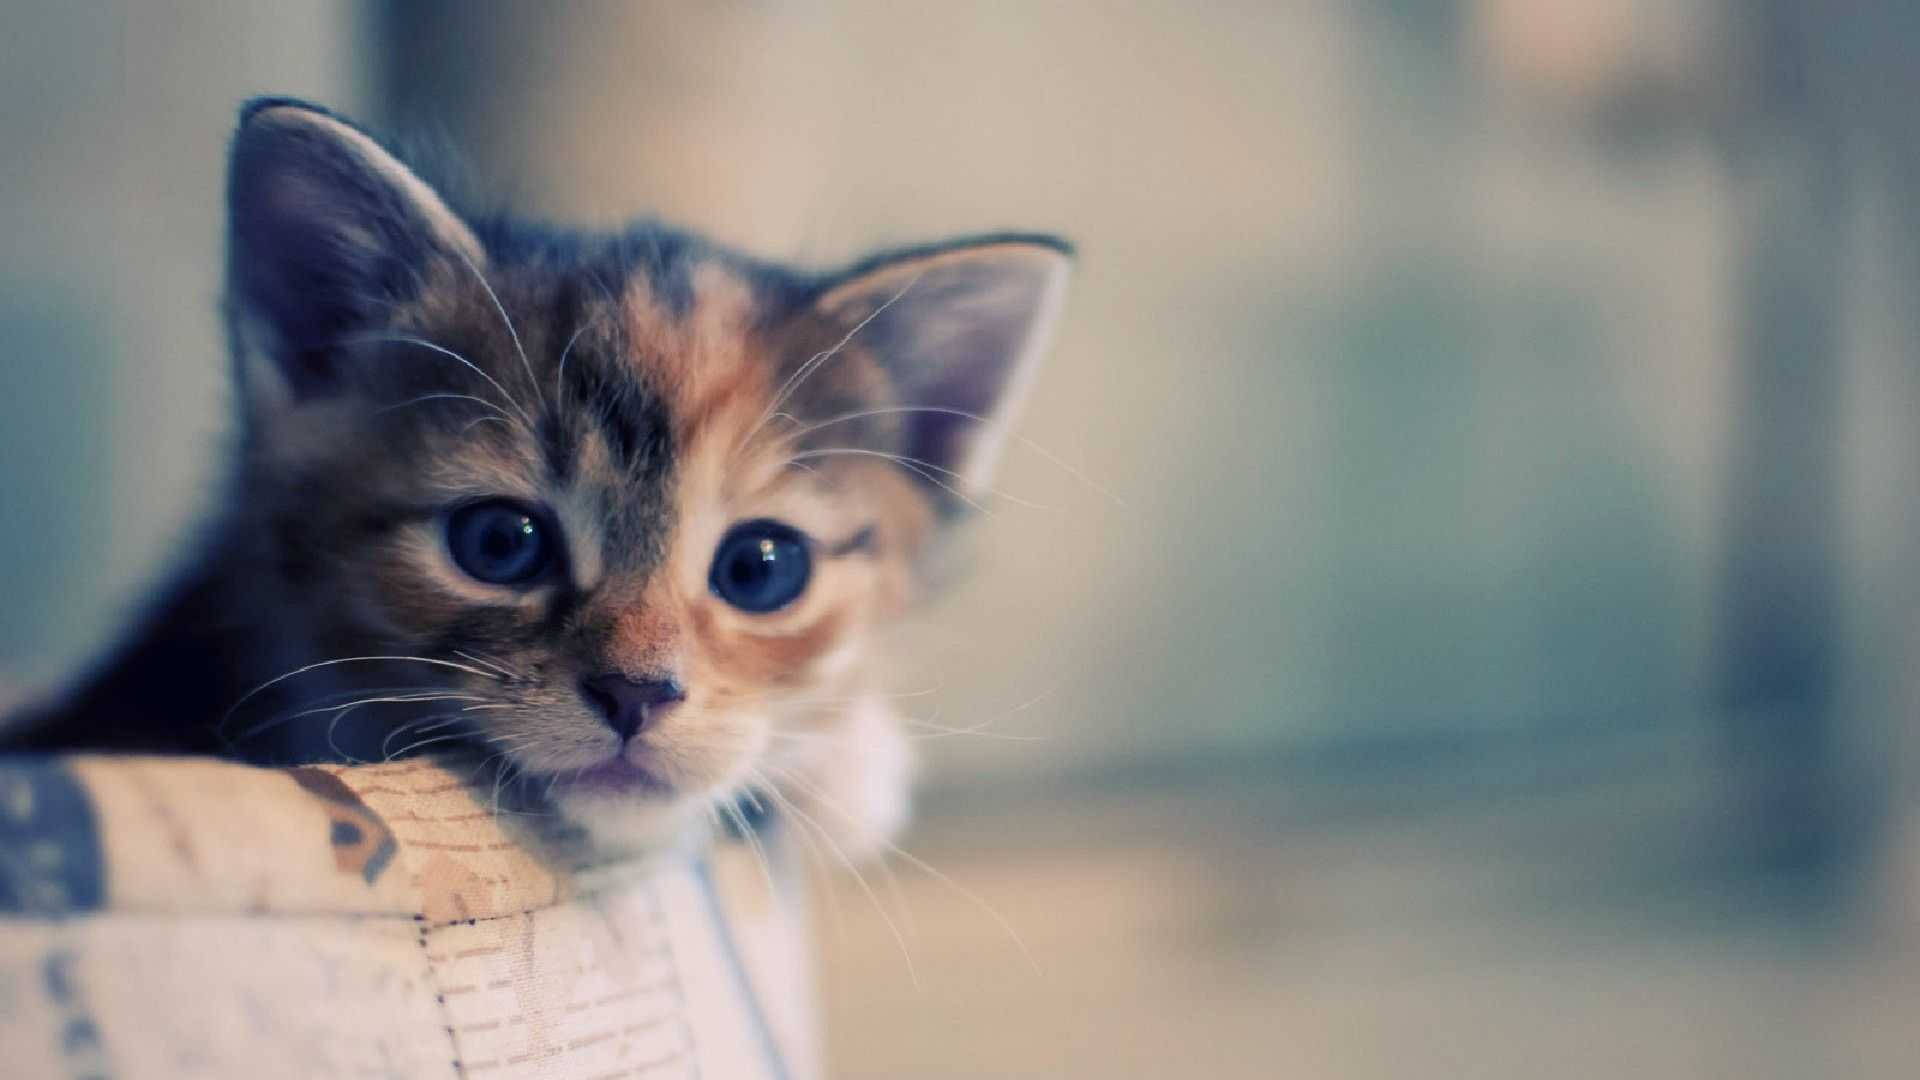 Cute Cat Hd Wallpapers Top Free Cute Cat Hd Backgrounds Wallpaperaccess